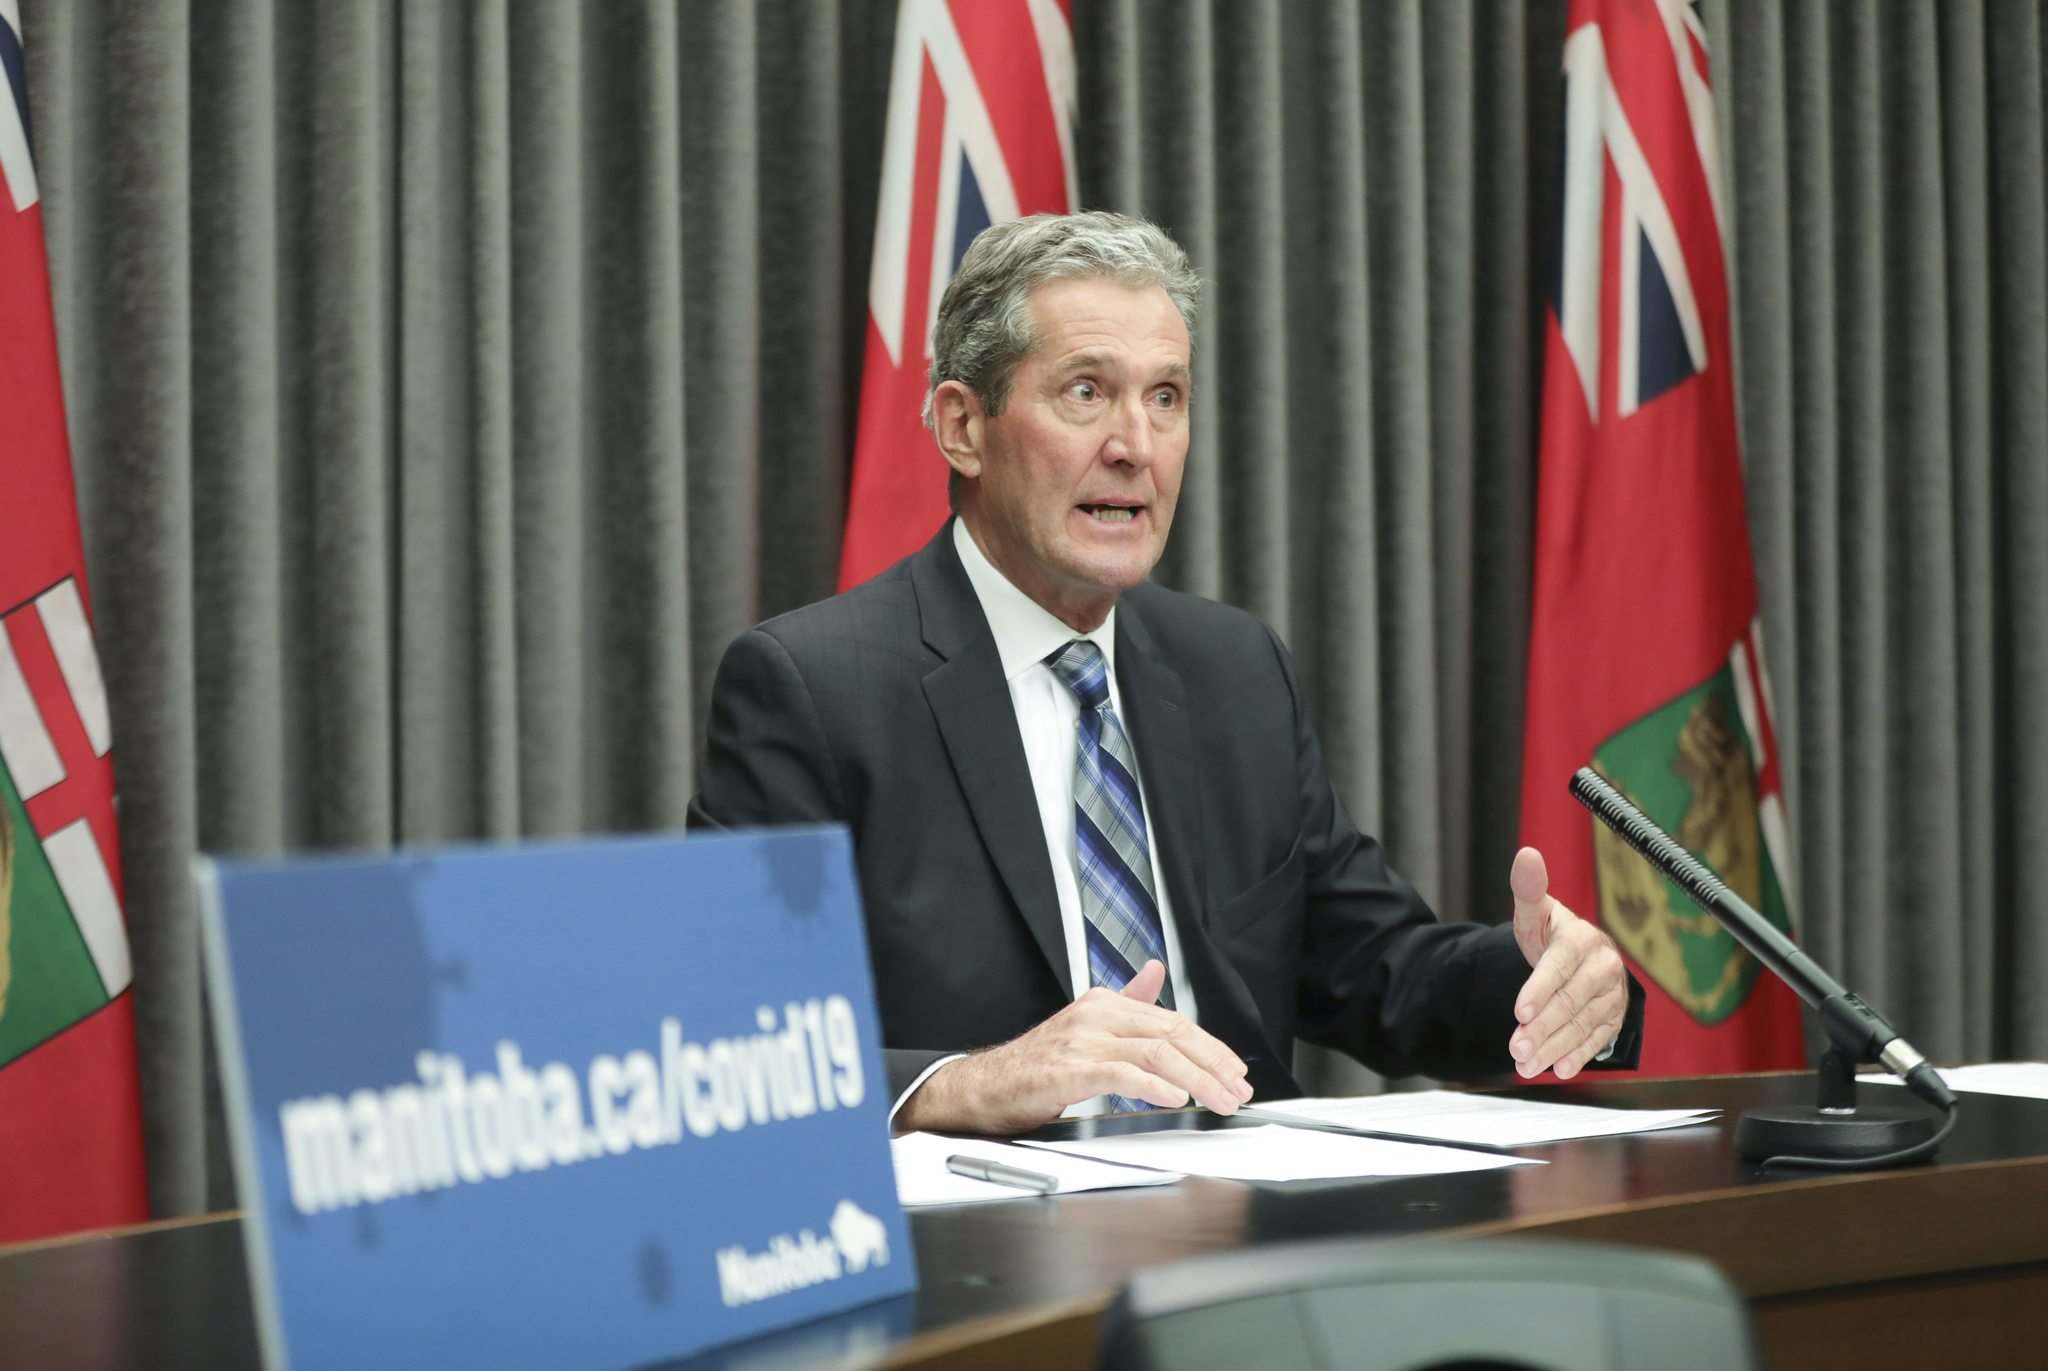 RUTH BONNEVILLE / WINNIPEG FREE PRESS</p><p>Premier Brian Pallister appears to have settled on a level of cuts lower than he first suggested. Instead of a 10 to 30 per cent reduction in staff, the province announced cuts would be 2.2 per cent.